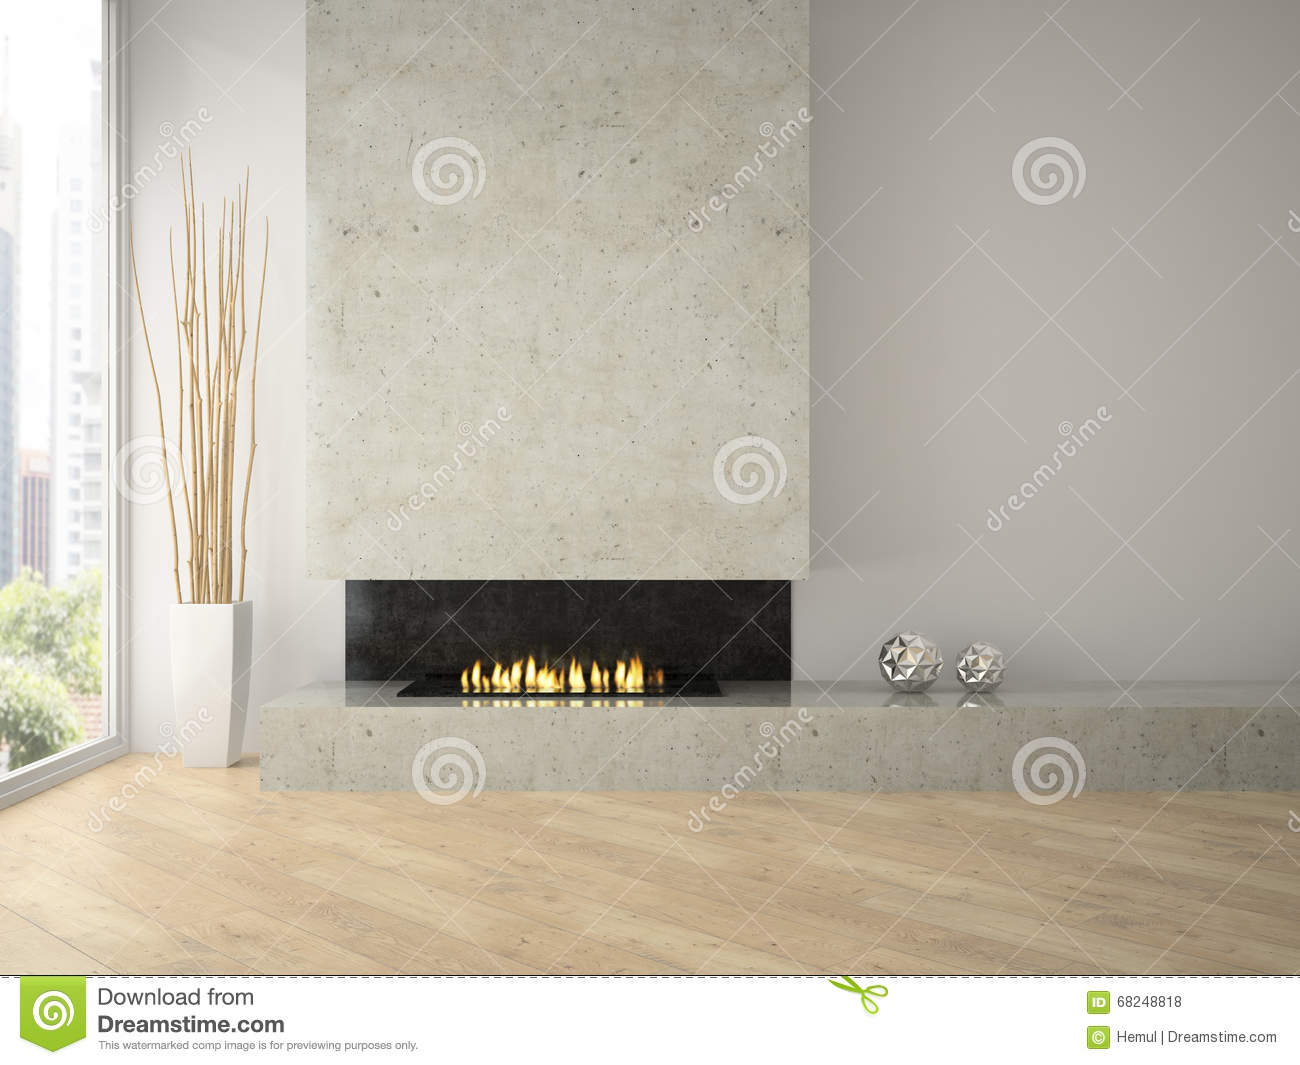 Interior of modern design loft with fireplace 3D rendering 2